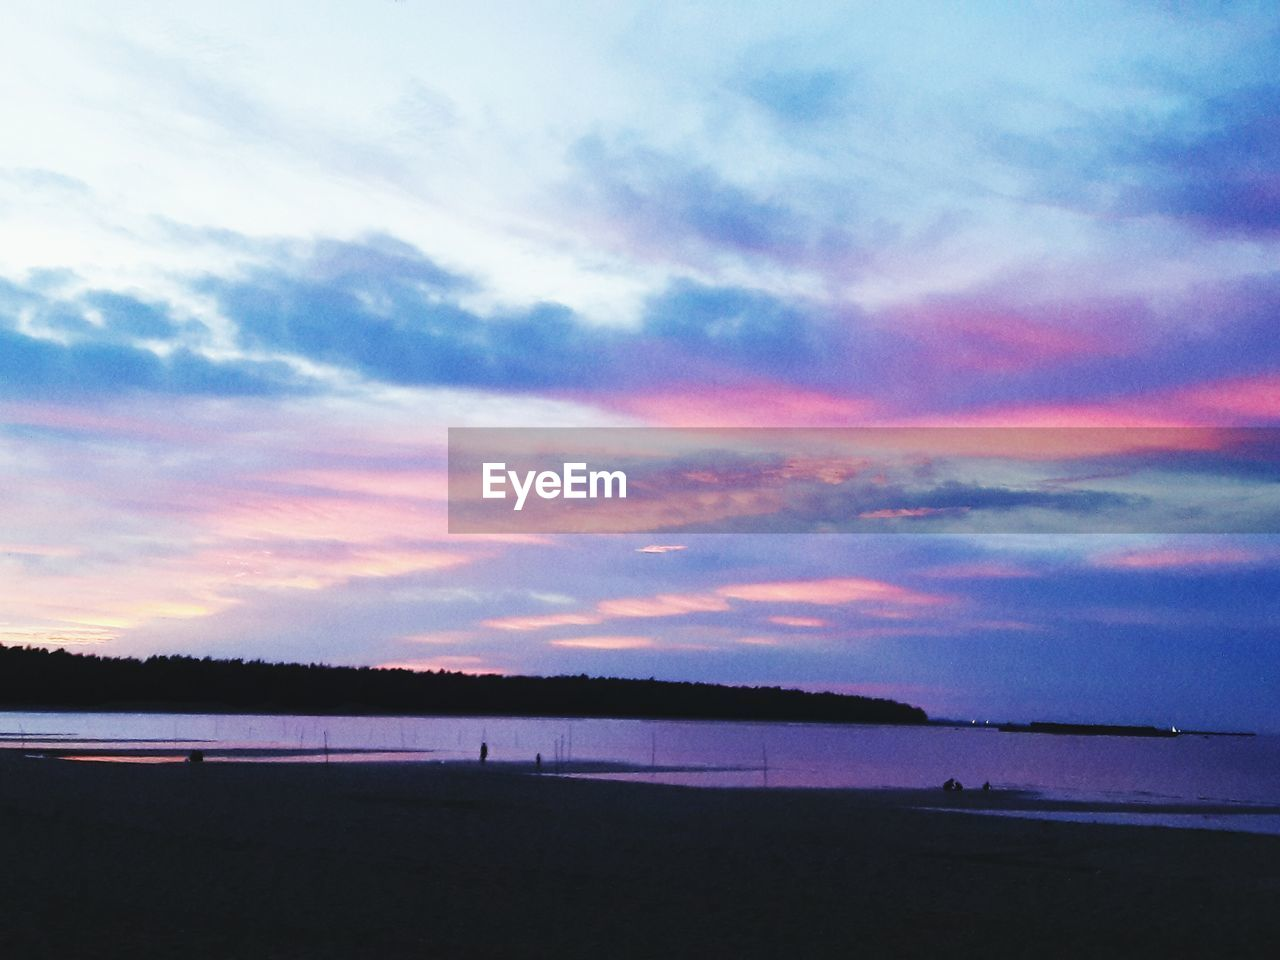 sky, cloud - sky, water, beauty in nature, scenics - nature, sunset, tranquility, tranquil scene, beach, sea, nature, land, no people, outdoors, idyllic, dusk, non-urban scene, silhouette